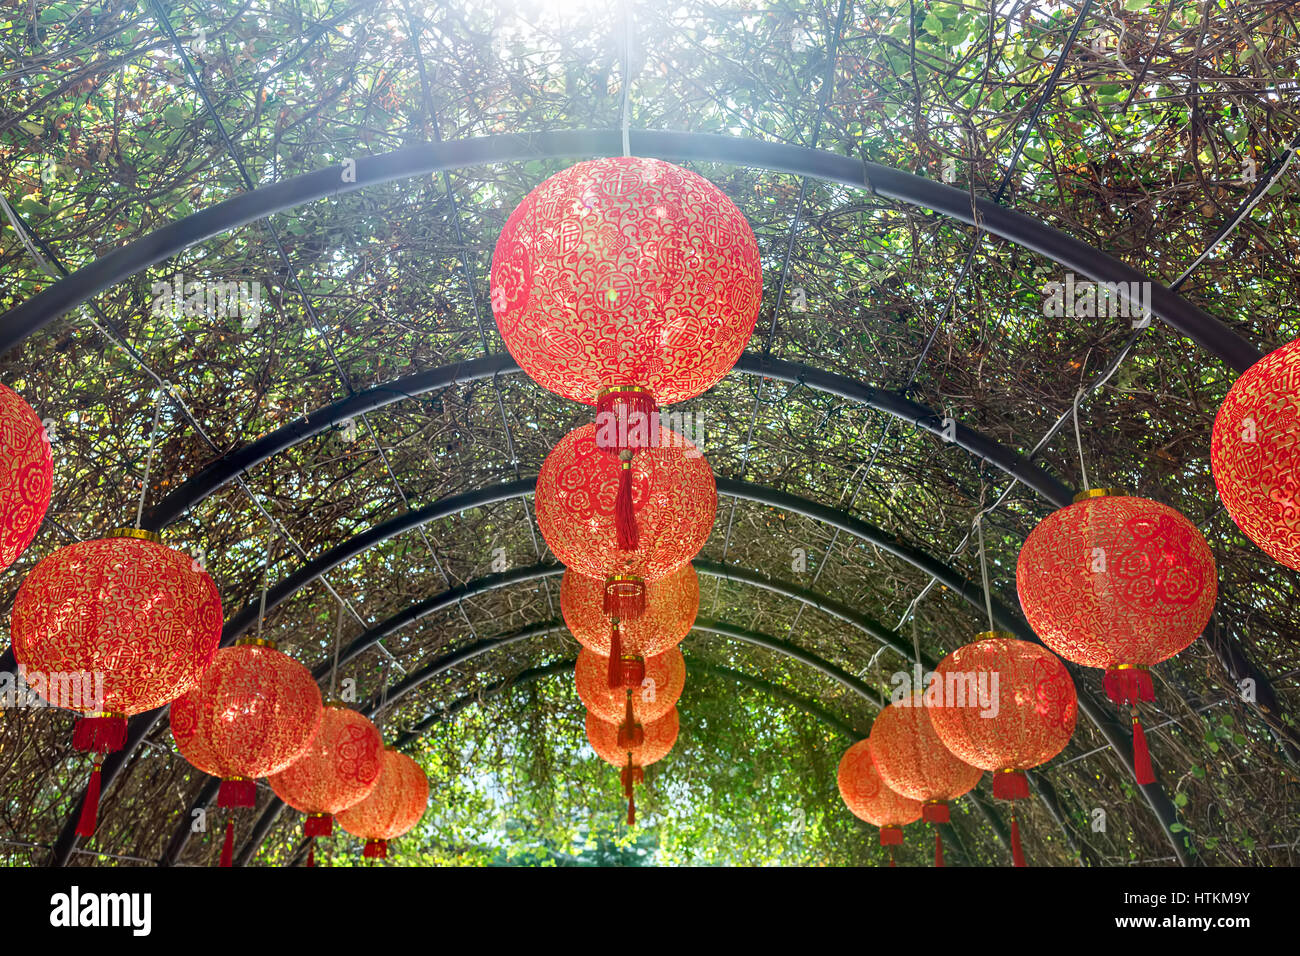 Many Hanging Asian Red Lanterns On The Arch Trellis With Green